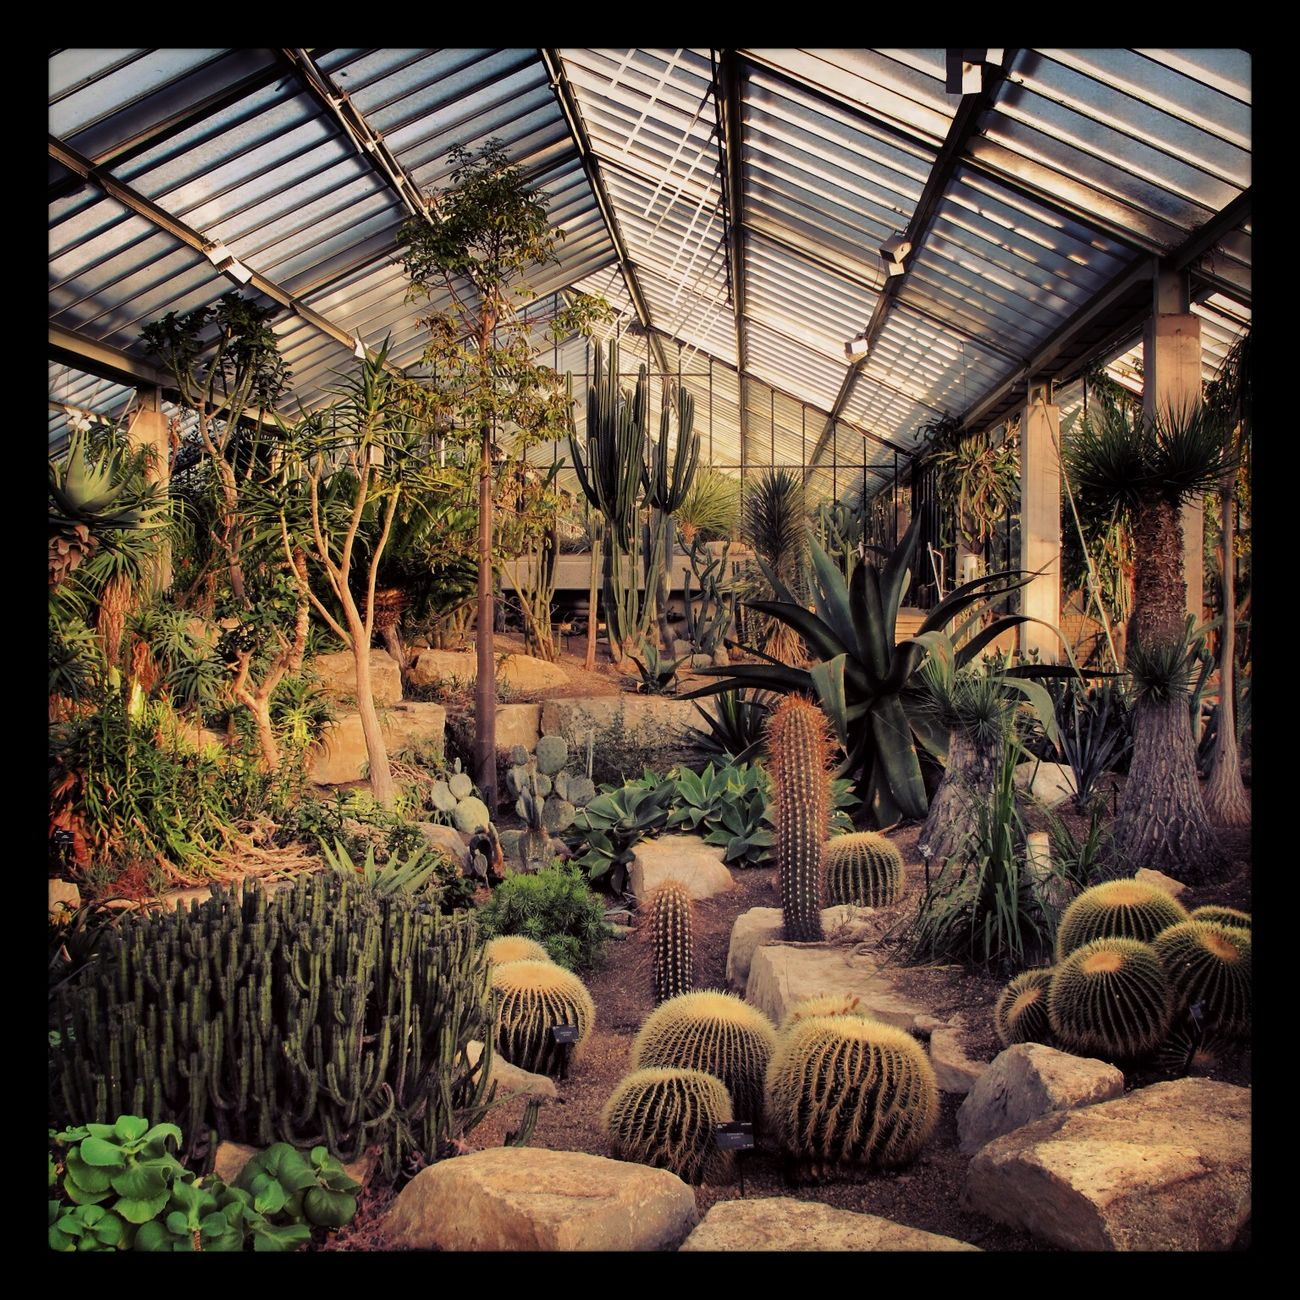 Kewgardens London Natureinabottle Cactirus